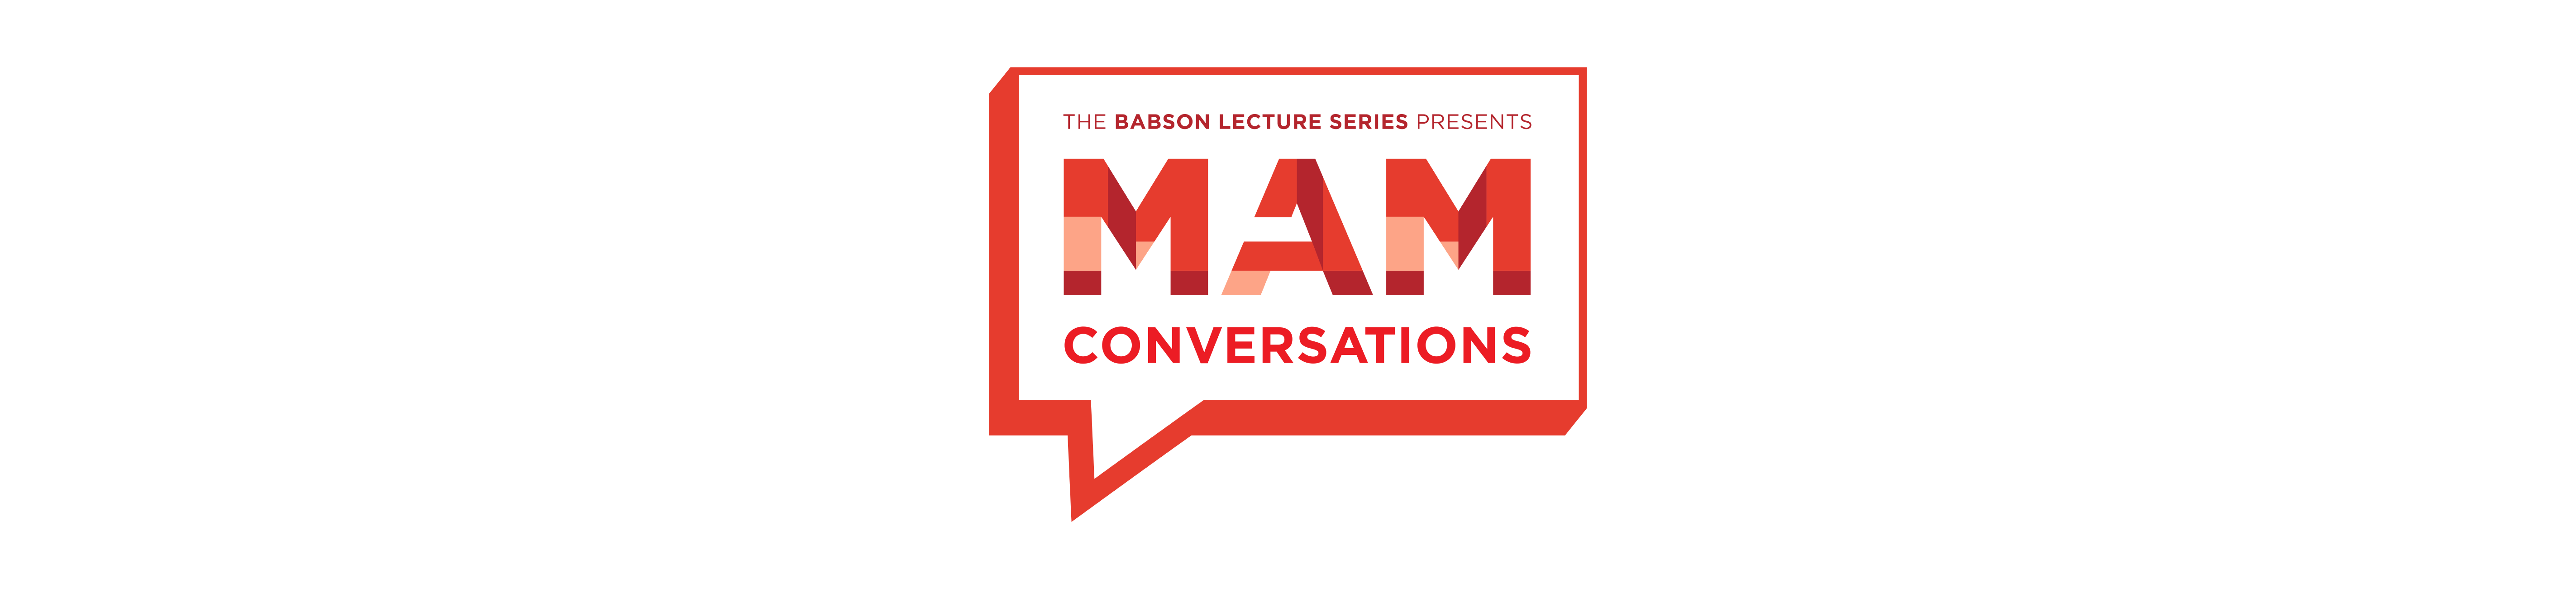 I'm an image! MAM conversations logo featuring a speech bubble on a white background